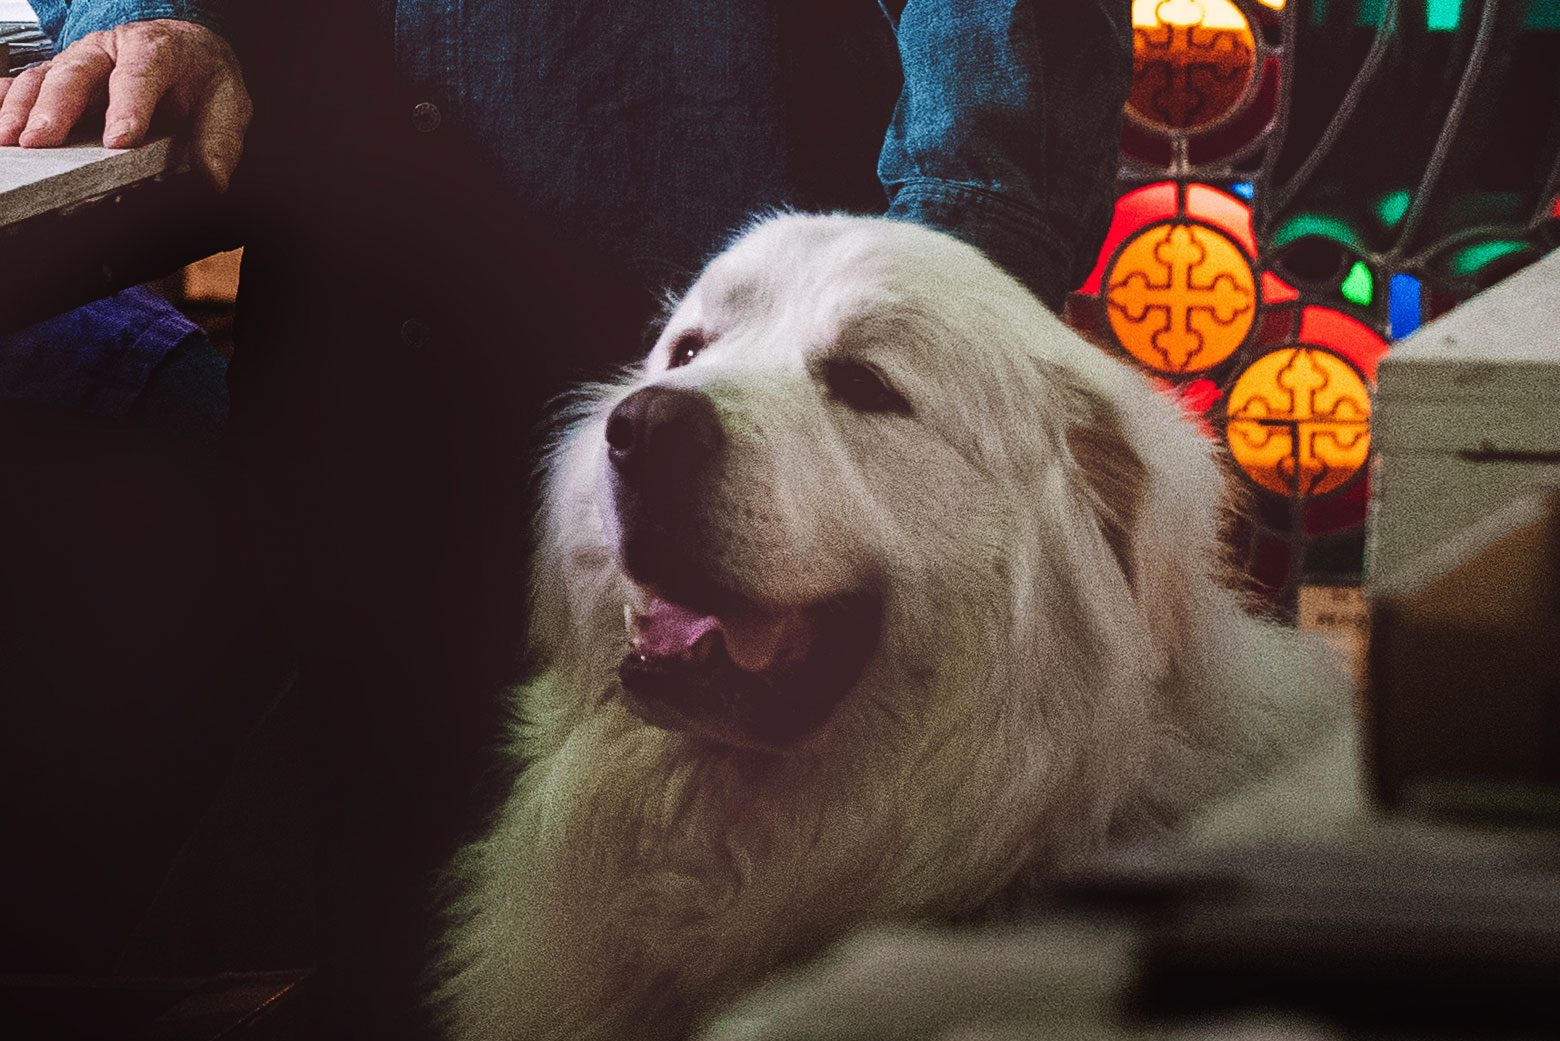 White Great Pyrenees dog in the stained glass studio